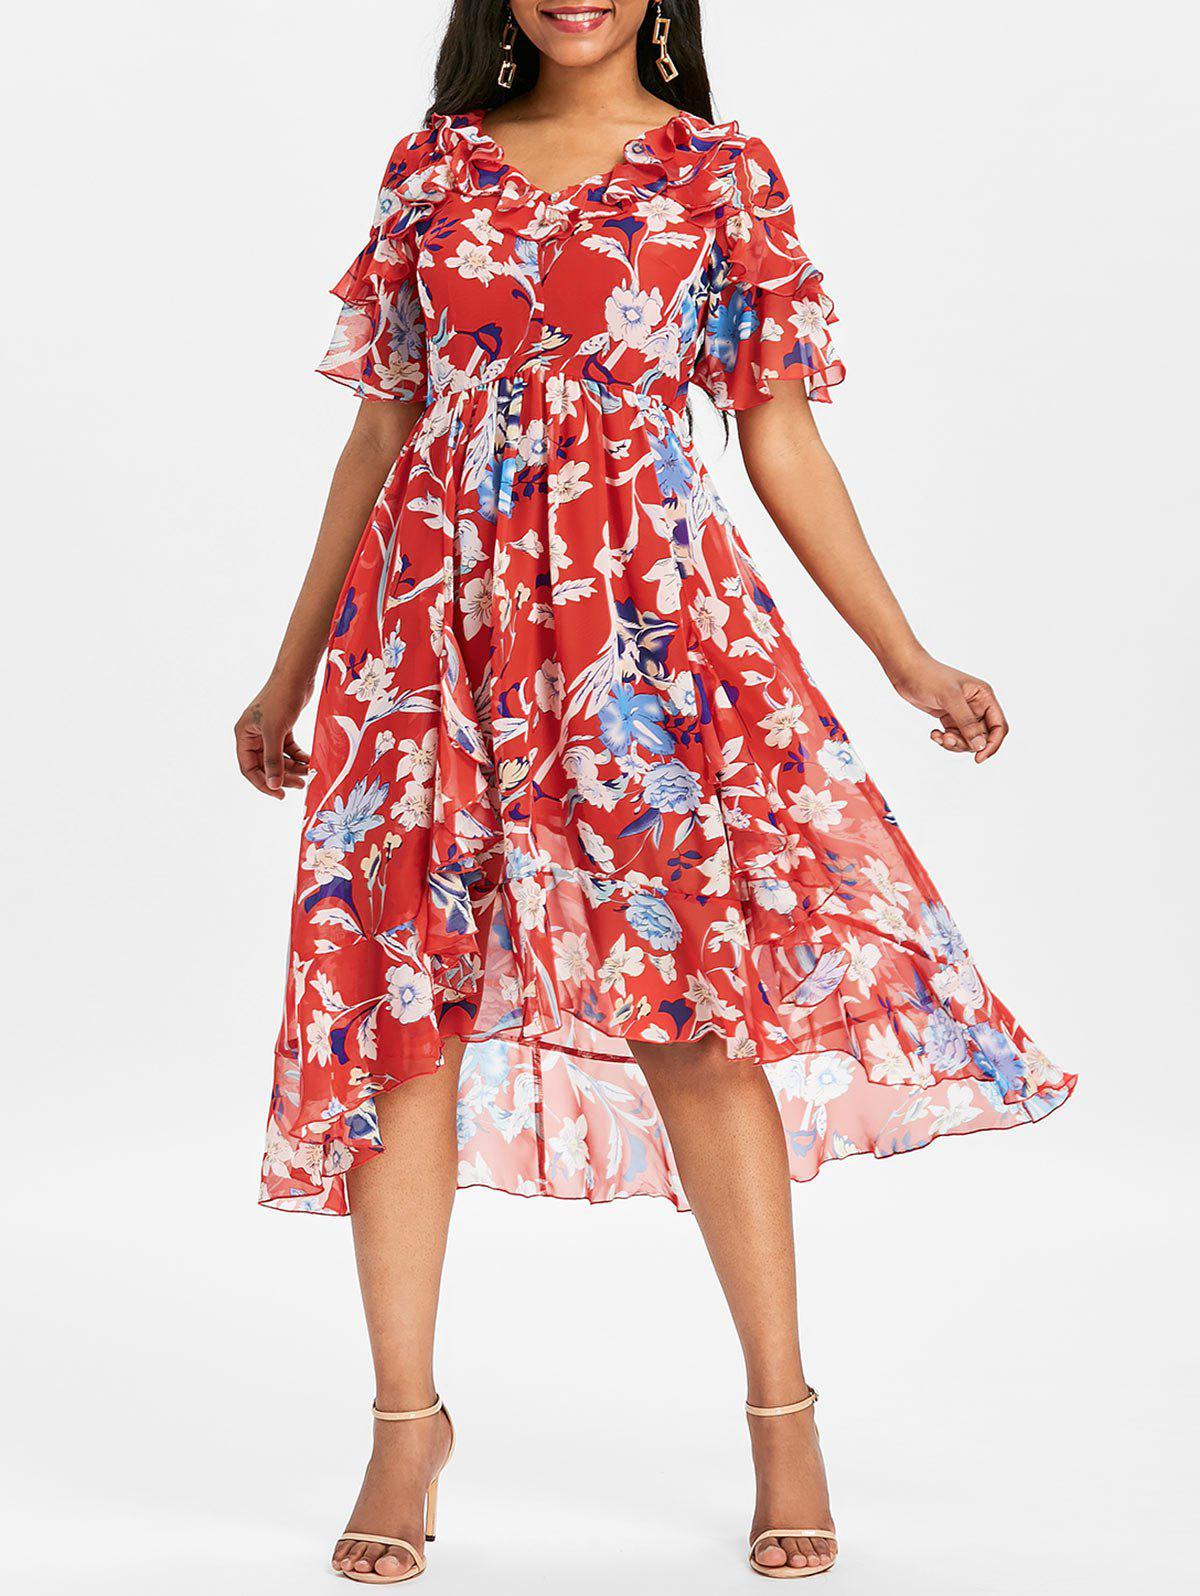 Flounce Print Midi Dress - RED M